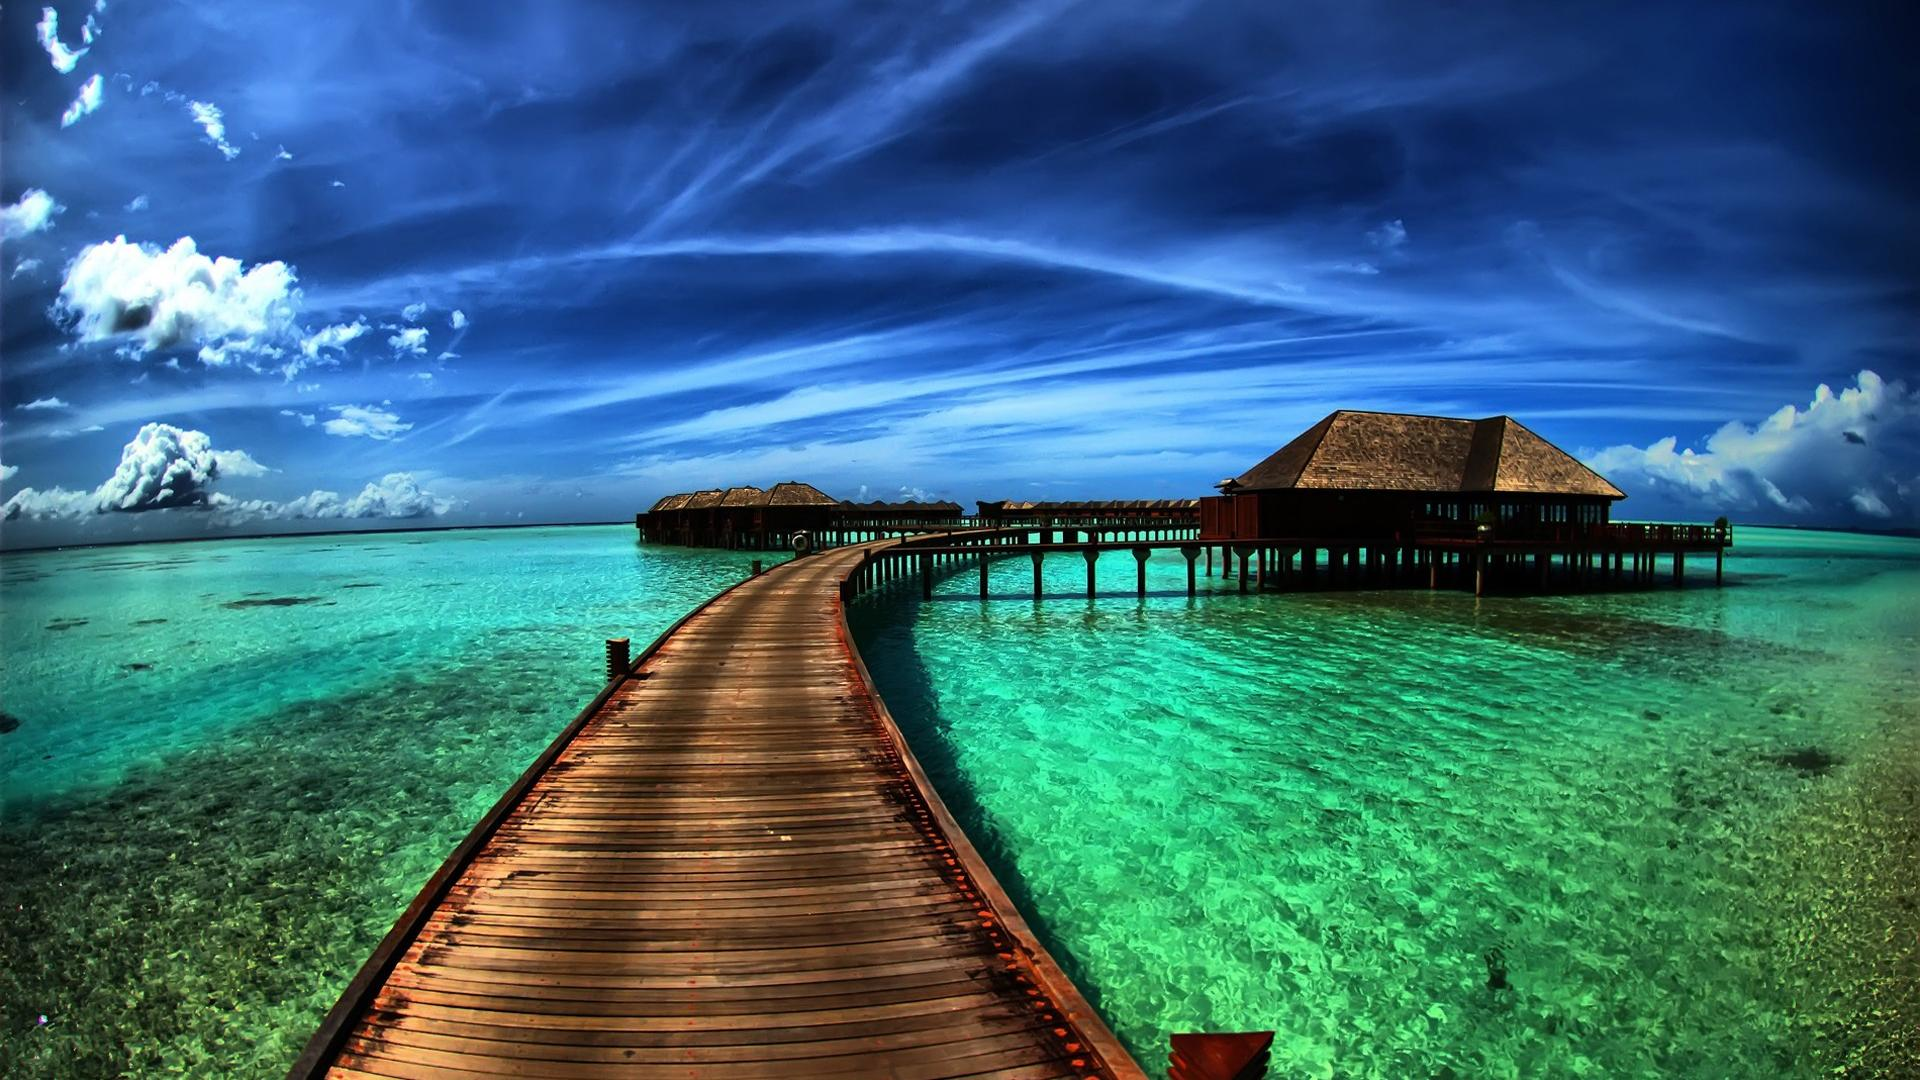 Maldives HD Wallpapers Desktop Backgrounds